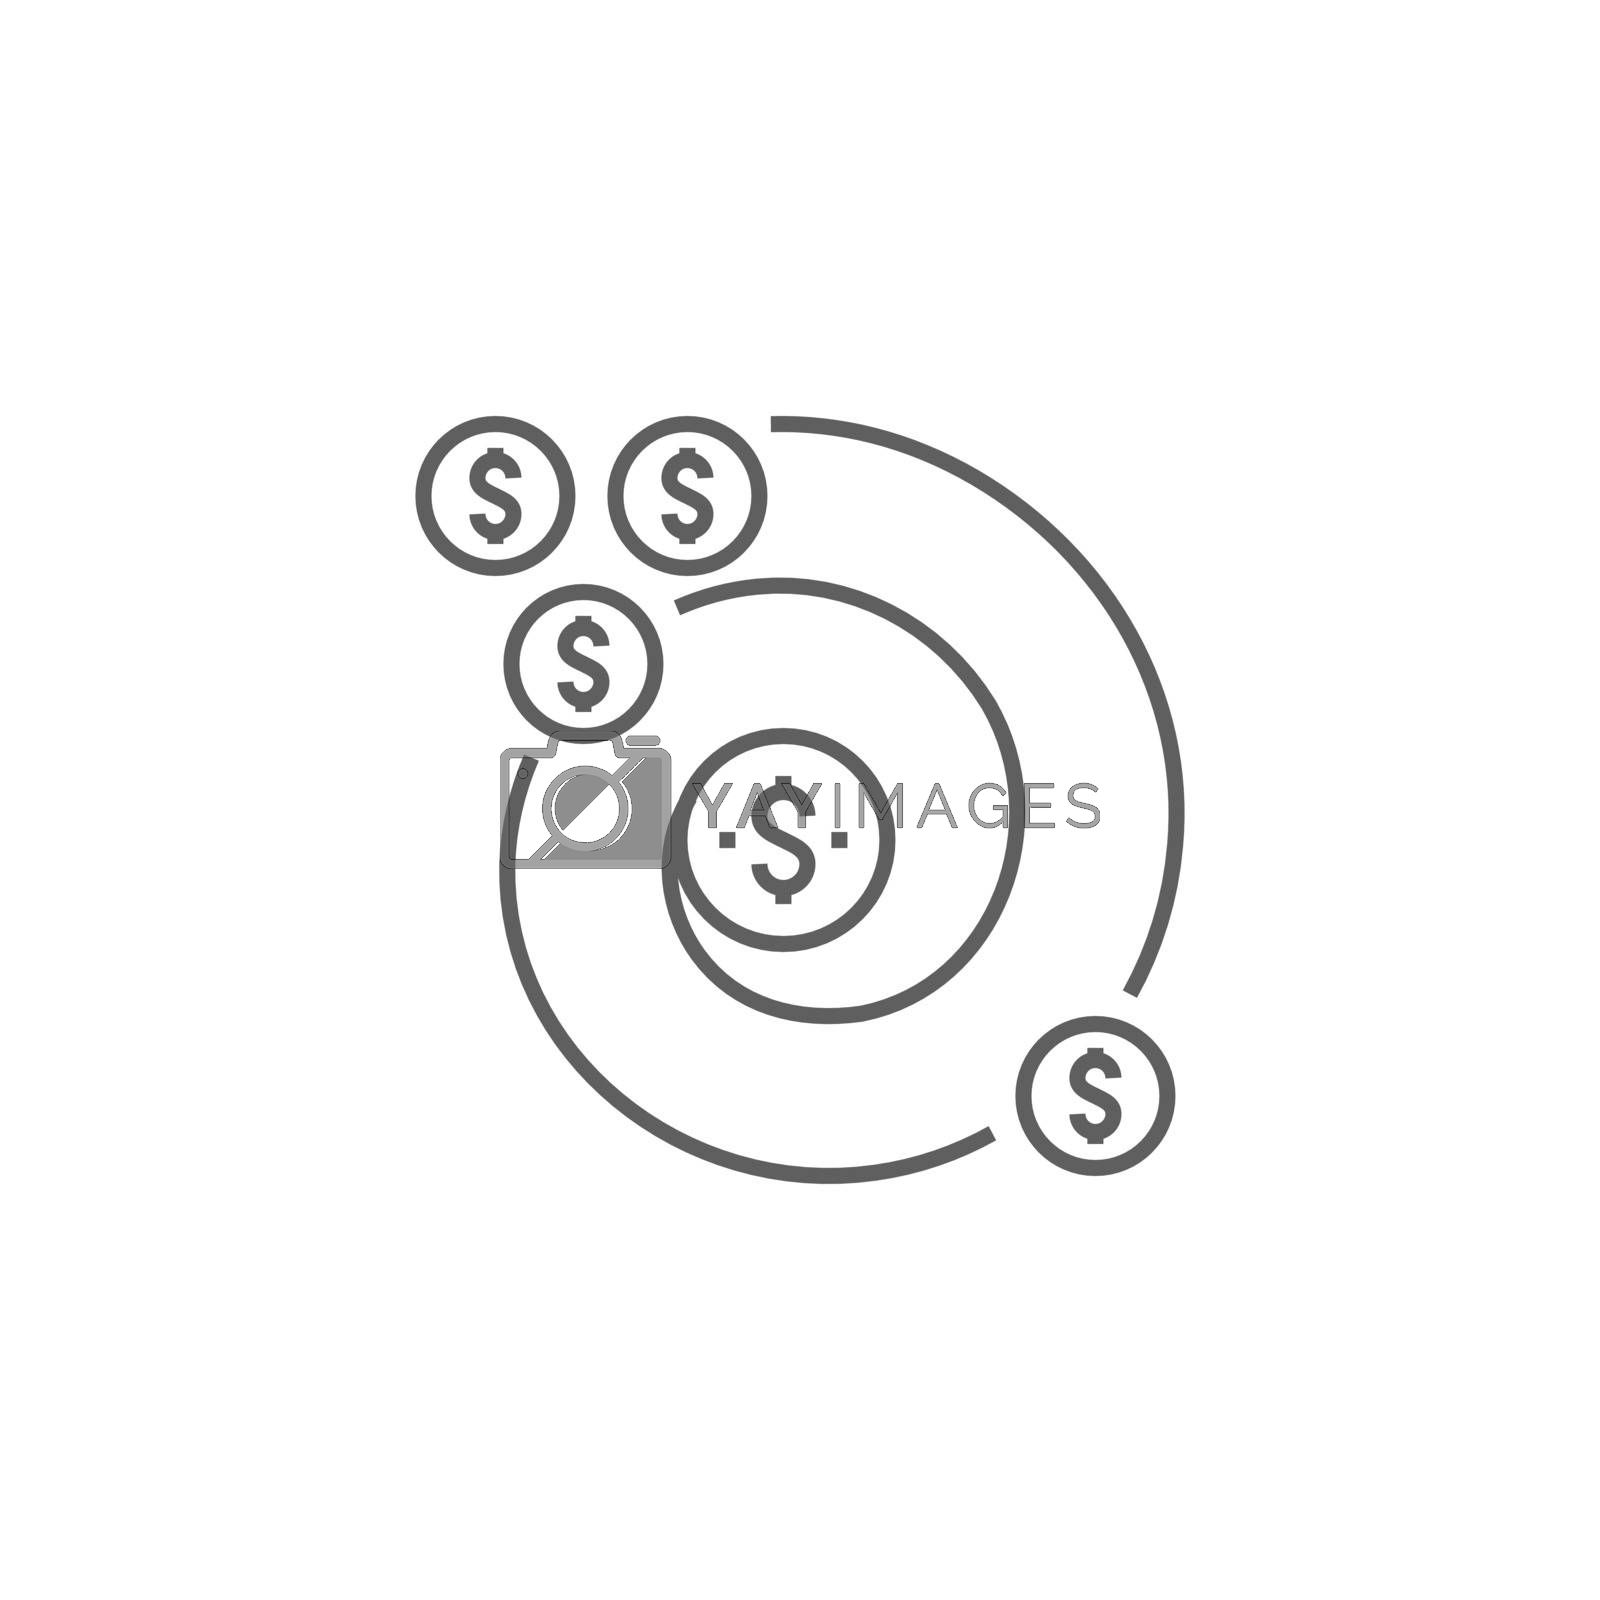 Return on Investment Related Vector Thin Line Icon. Isolated on White Background. Editable Stroke. Vector Illustration.